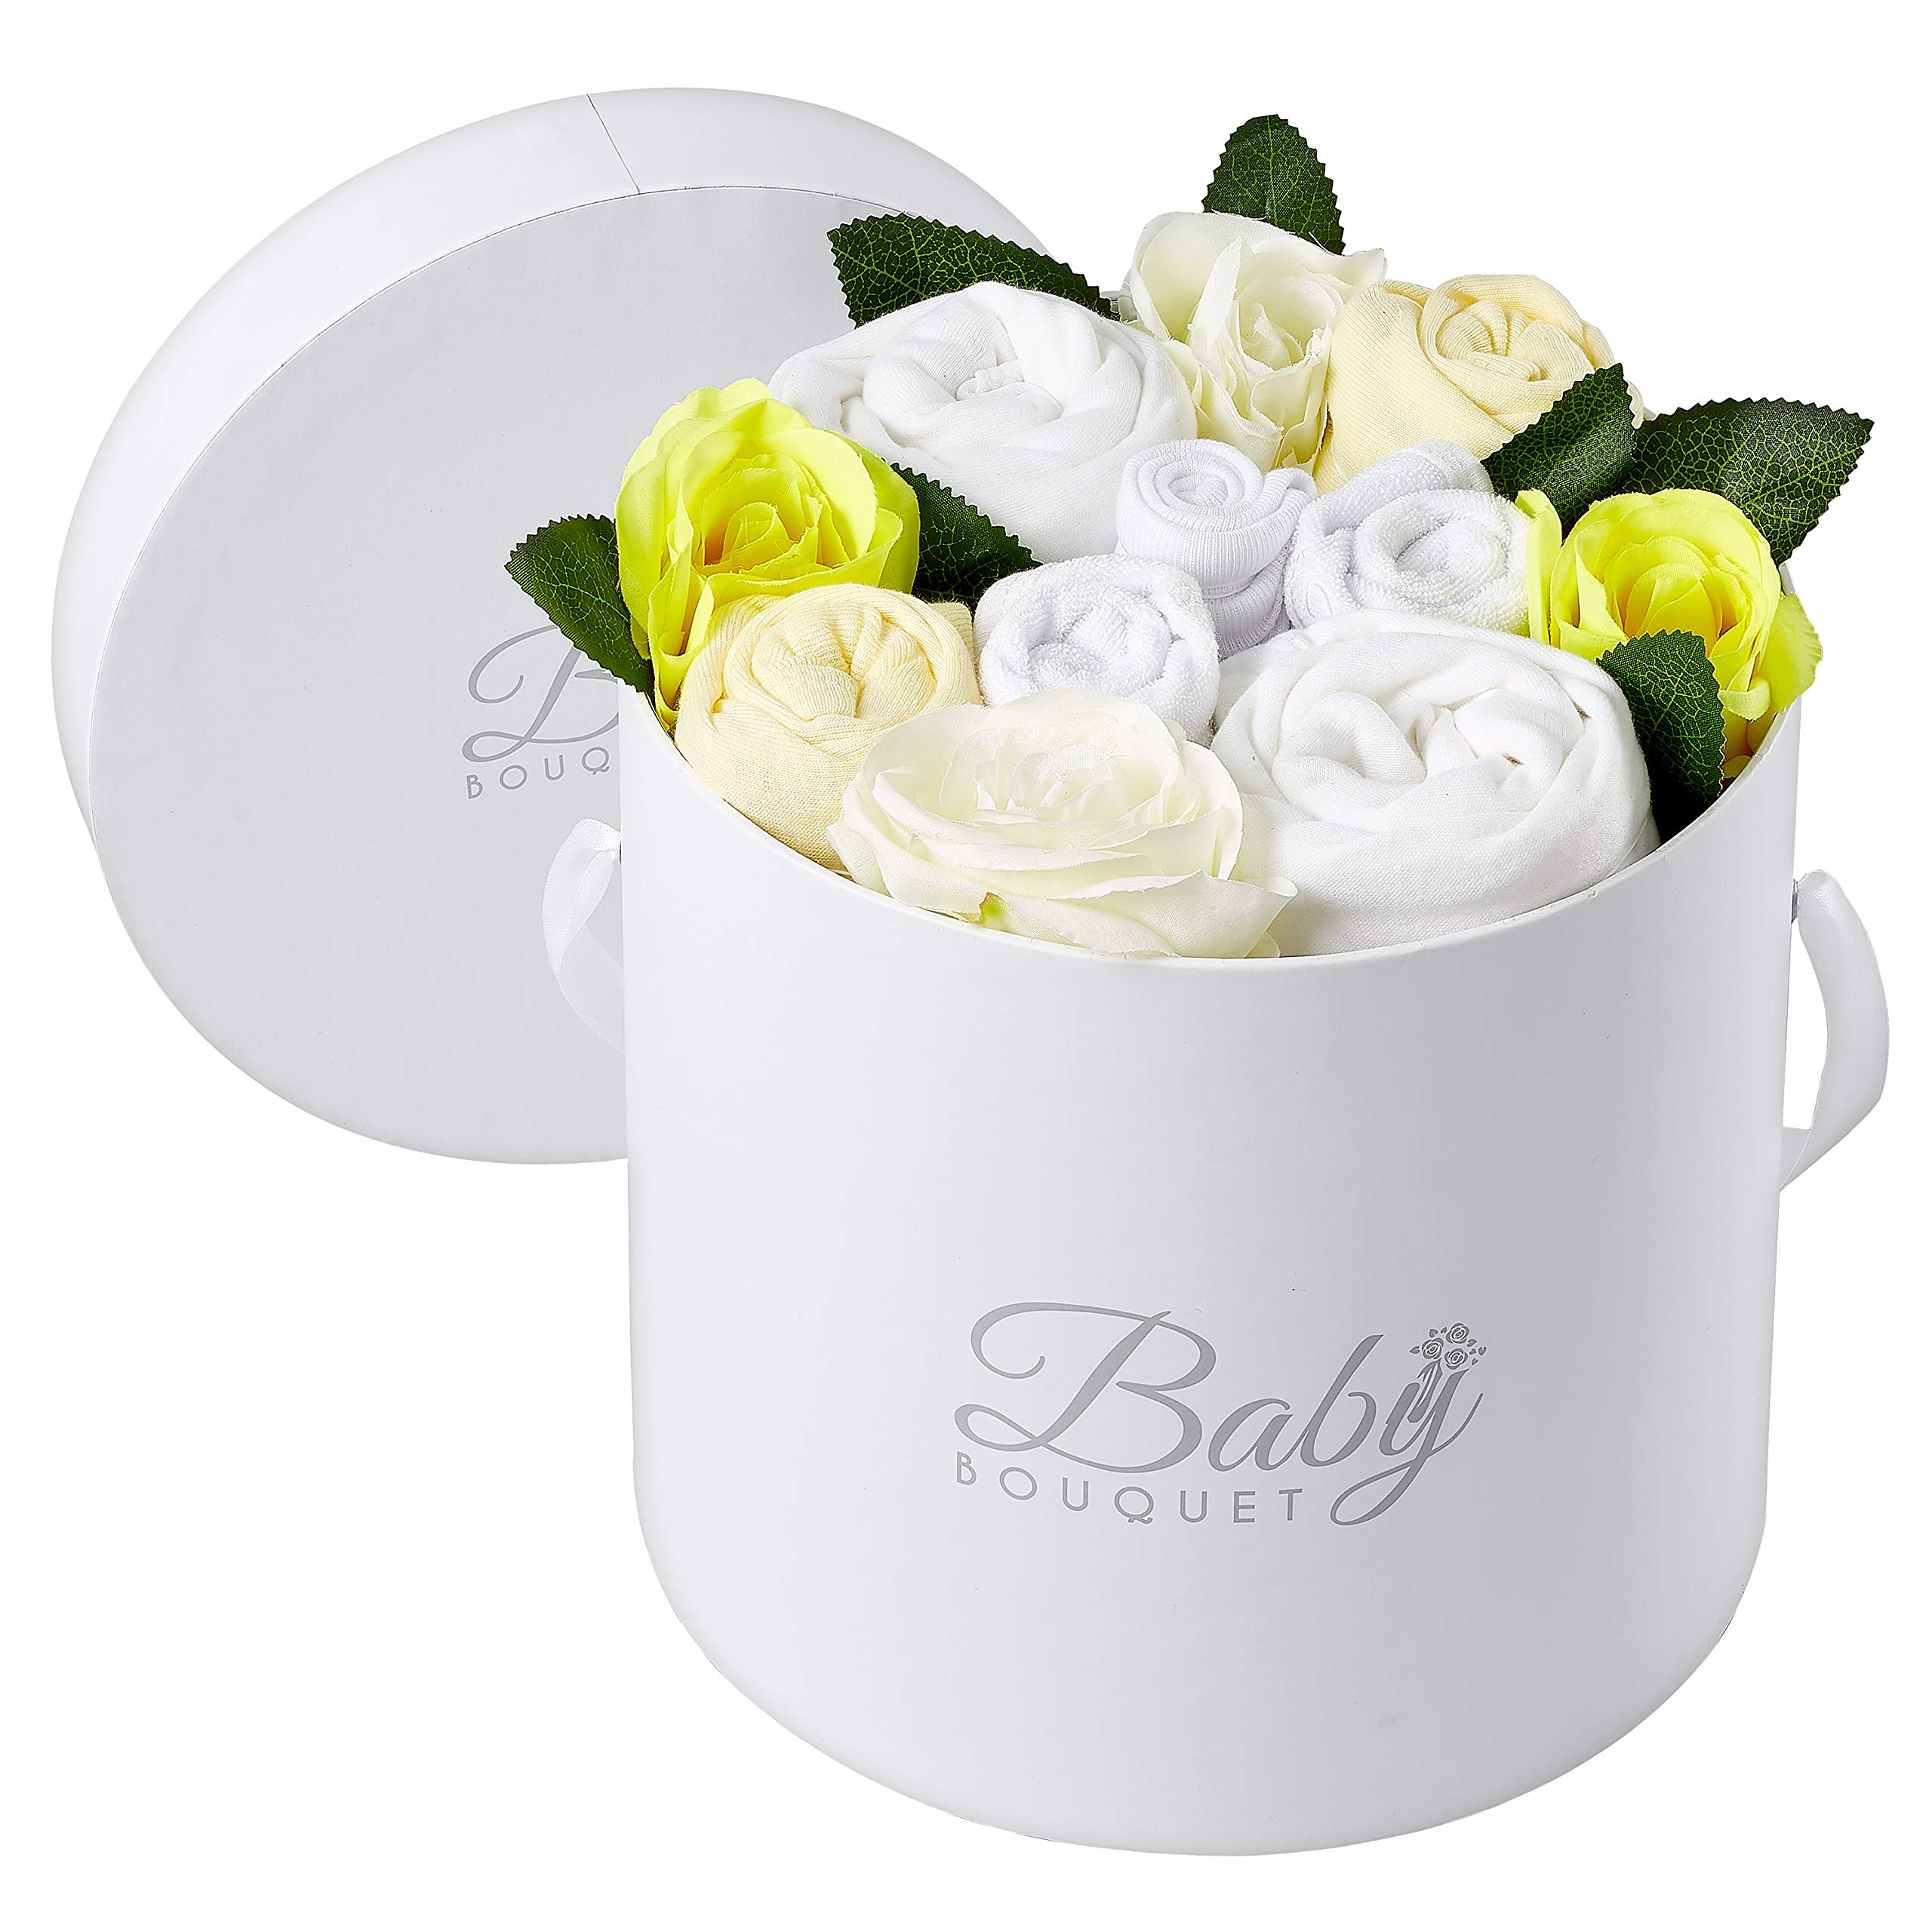 Kensington Bouquet Yellow by Baby Bouquet Company